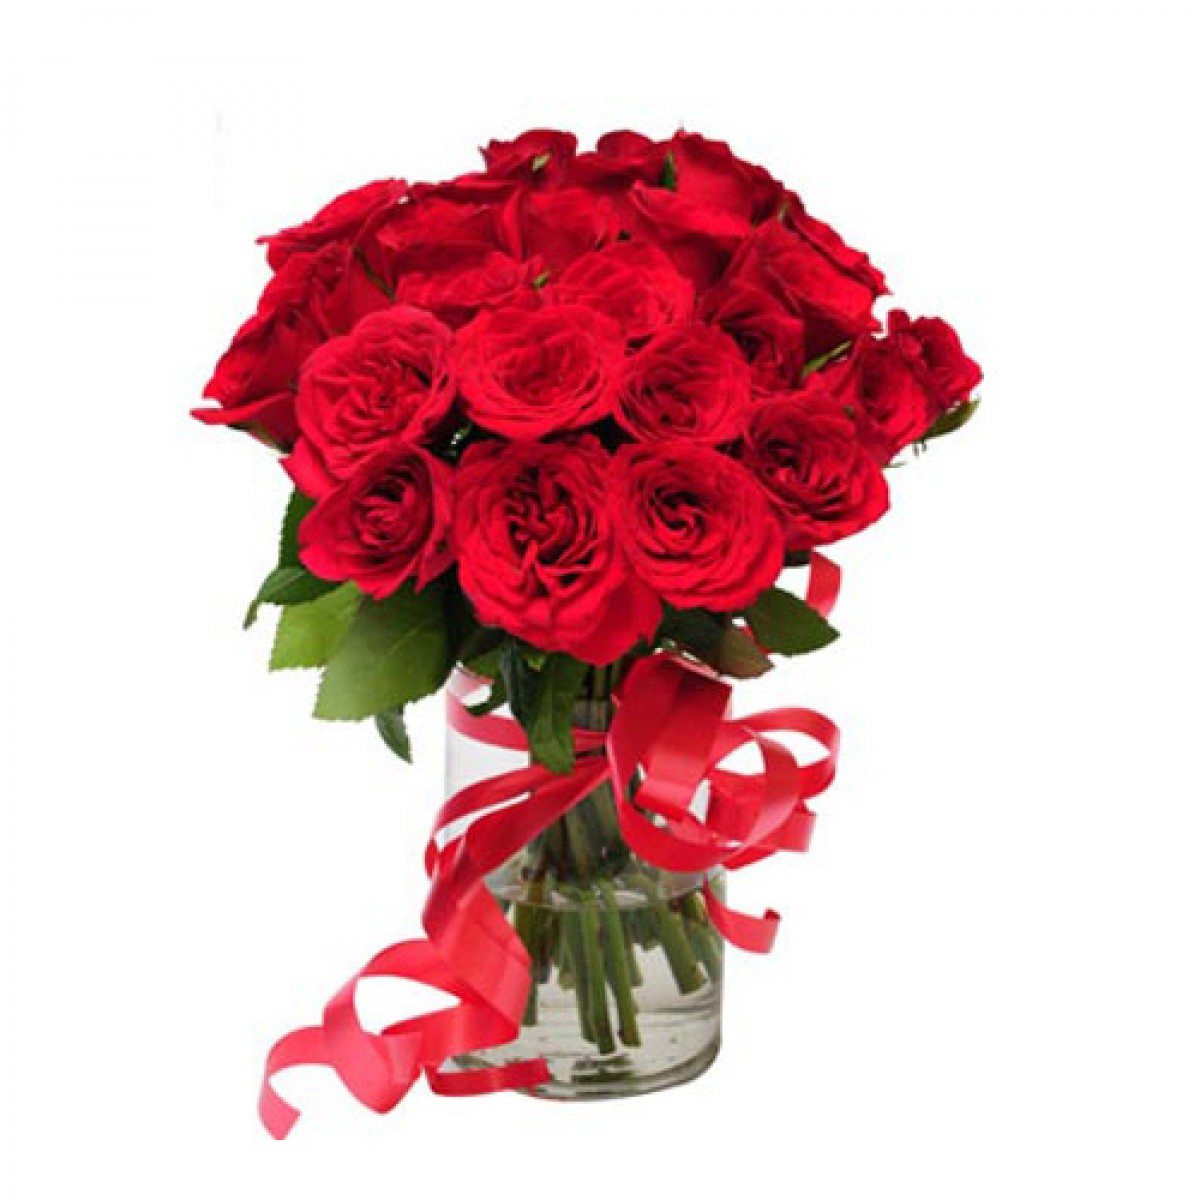 20 Red Roses In A Vase With A Ribbon Bow Multi City